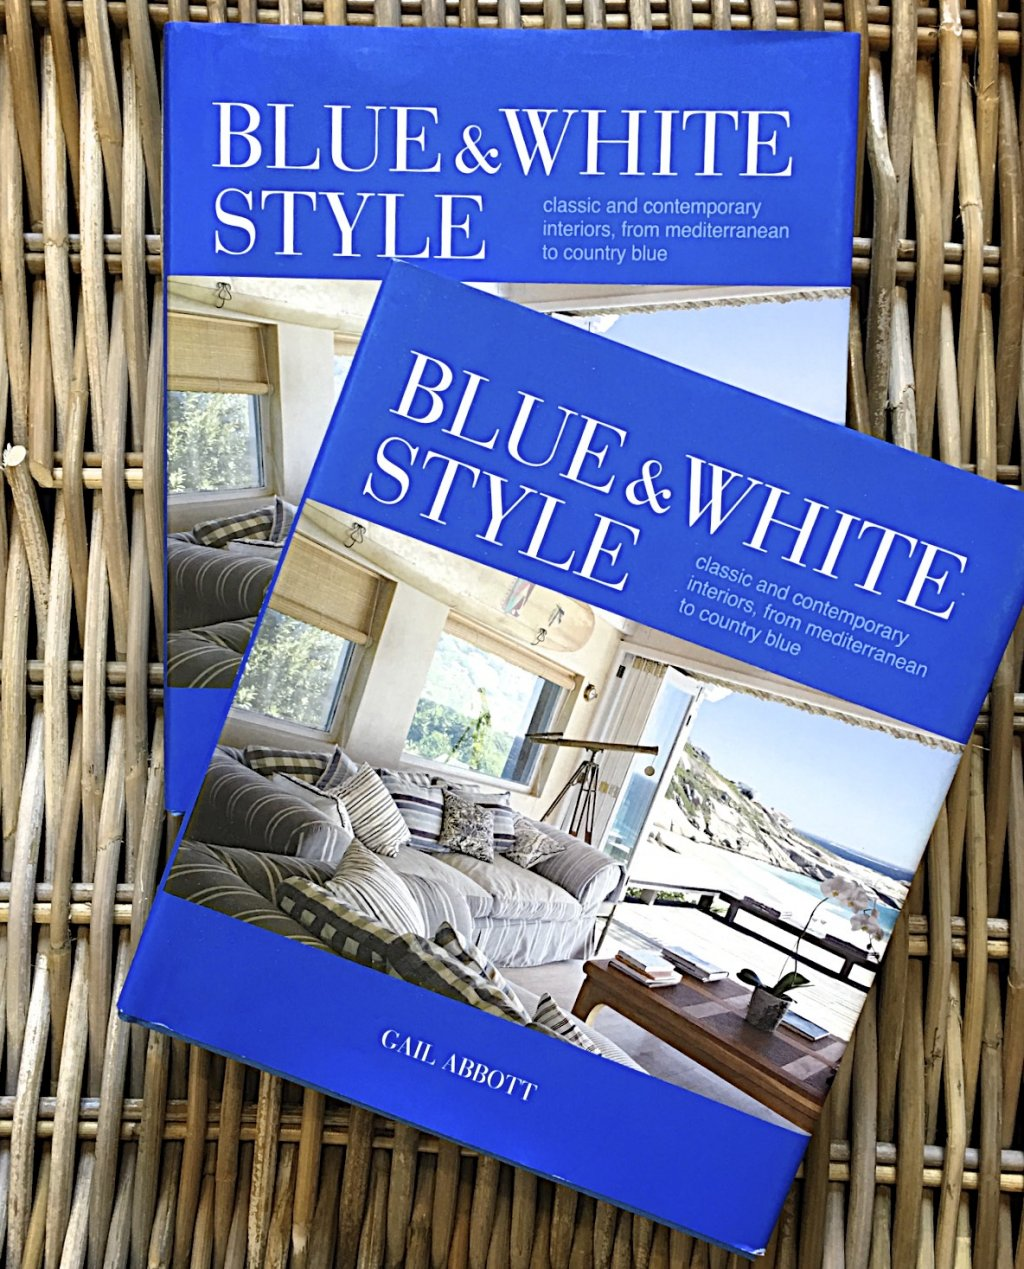 Gail Abbot | Blue & White Style